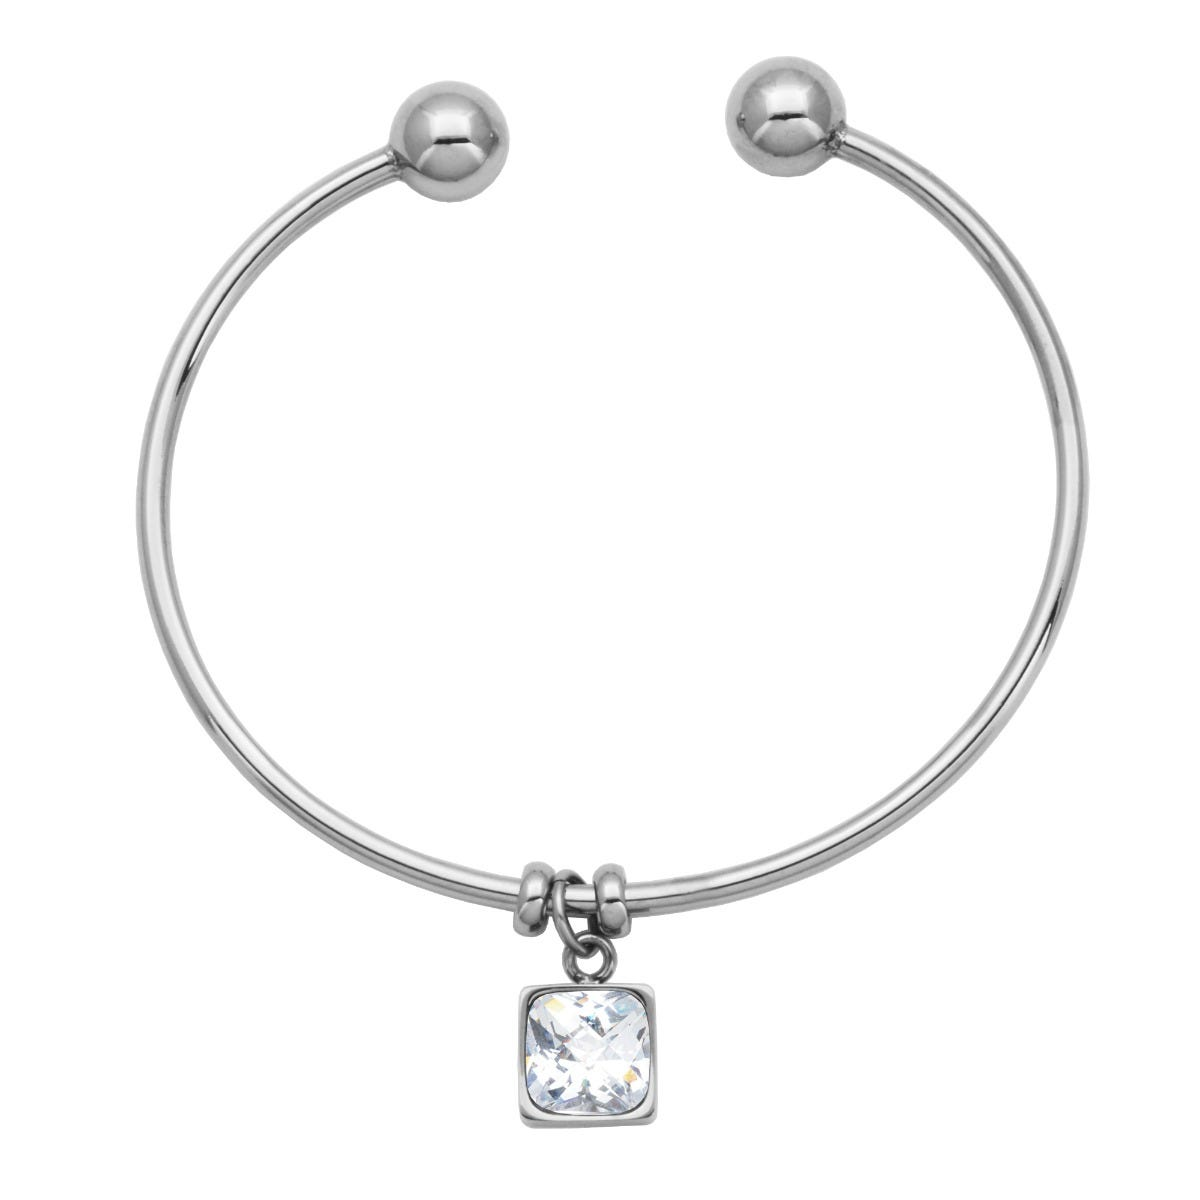 White Crystal Cushion-Cut Flexible Cuff Bangle Bracelet